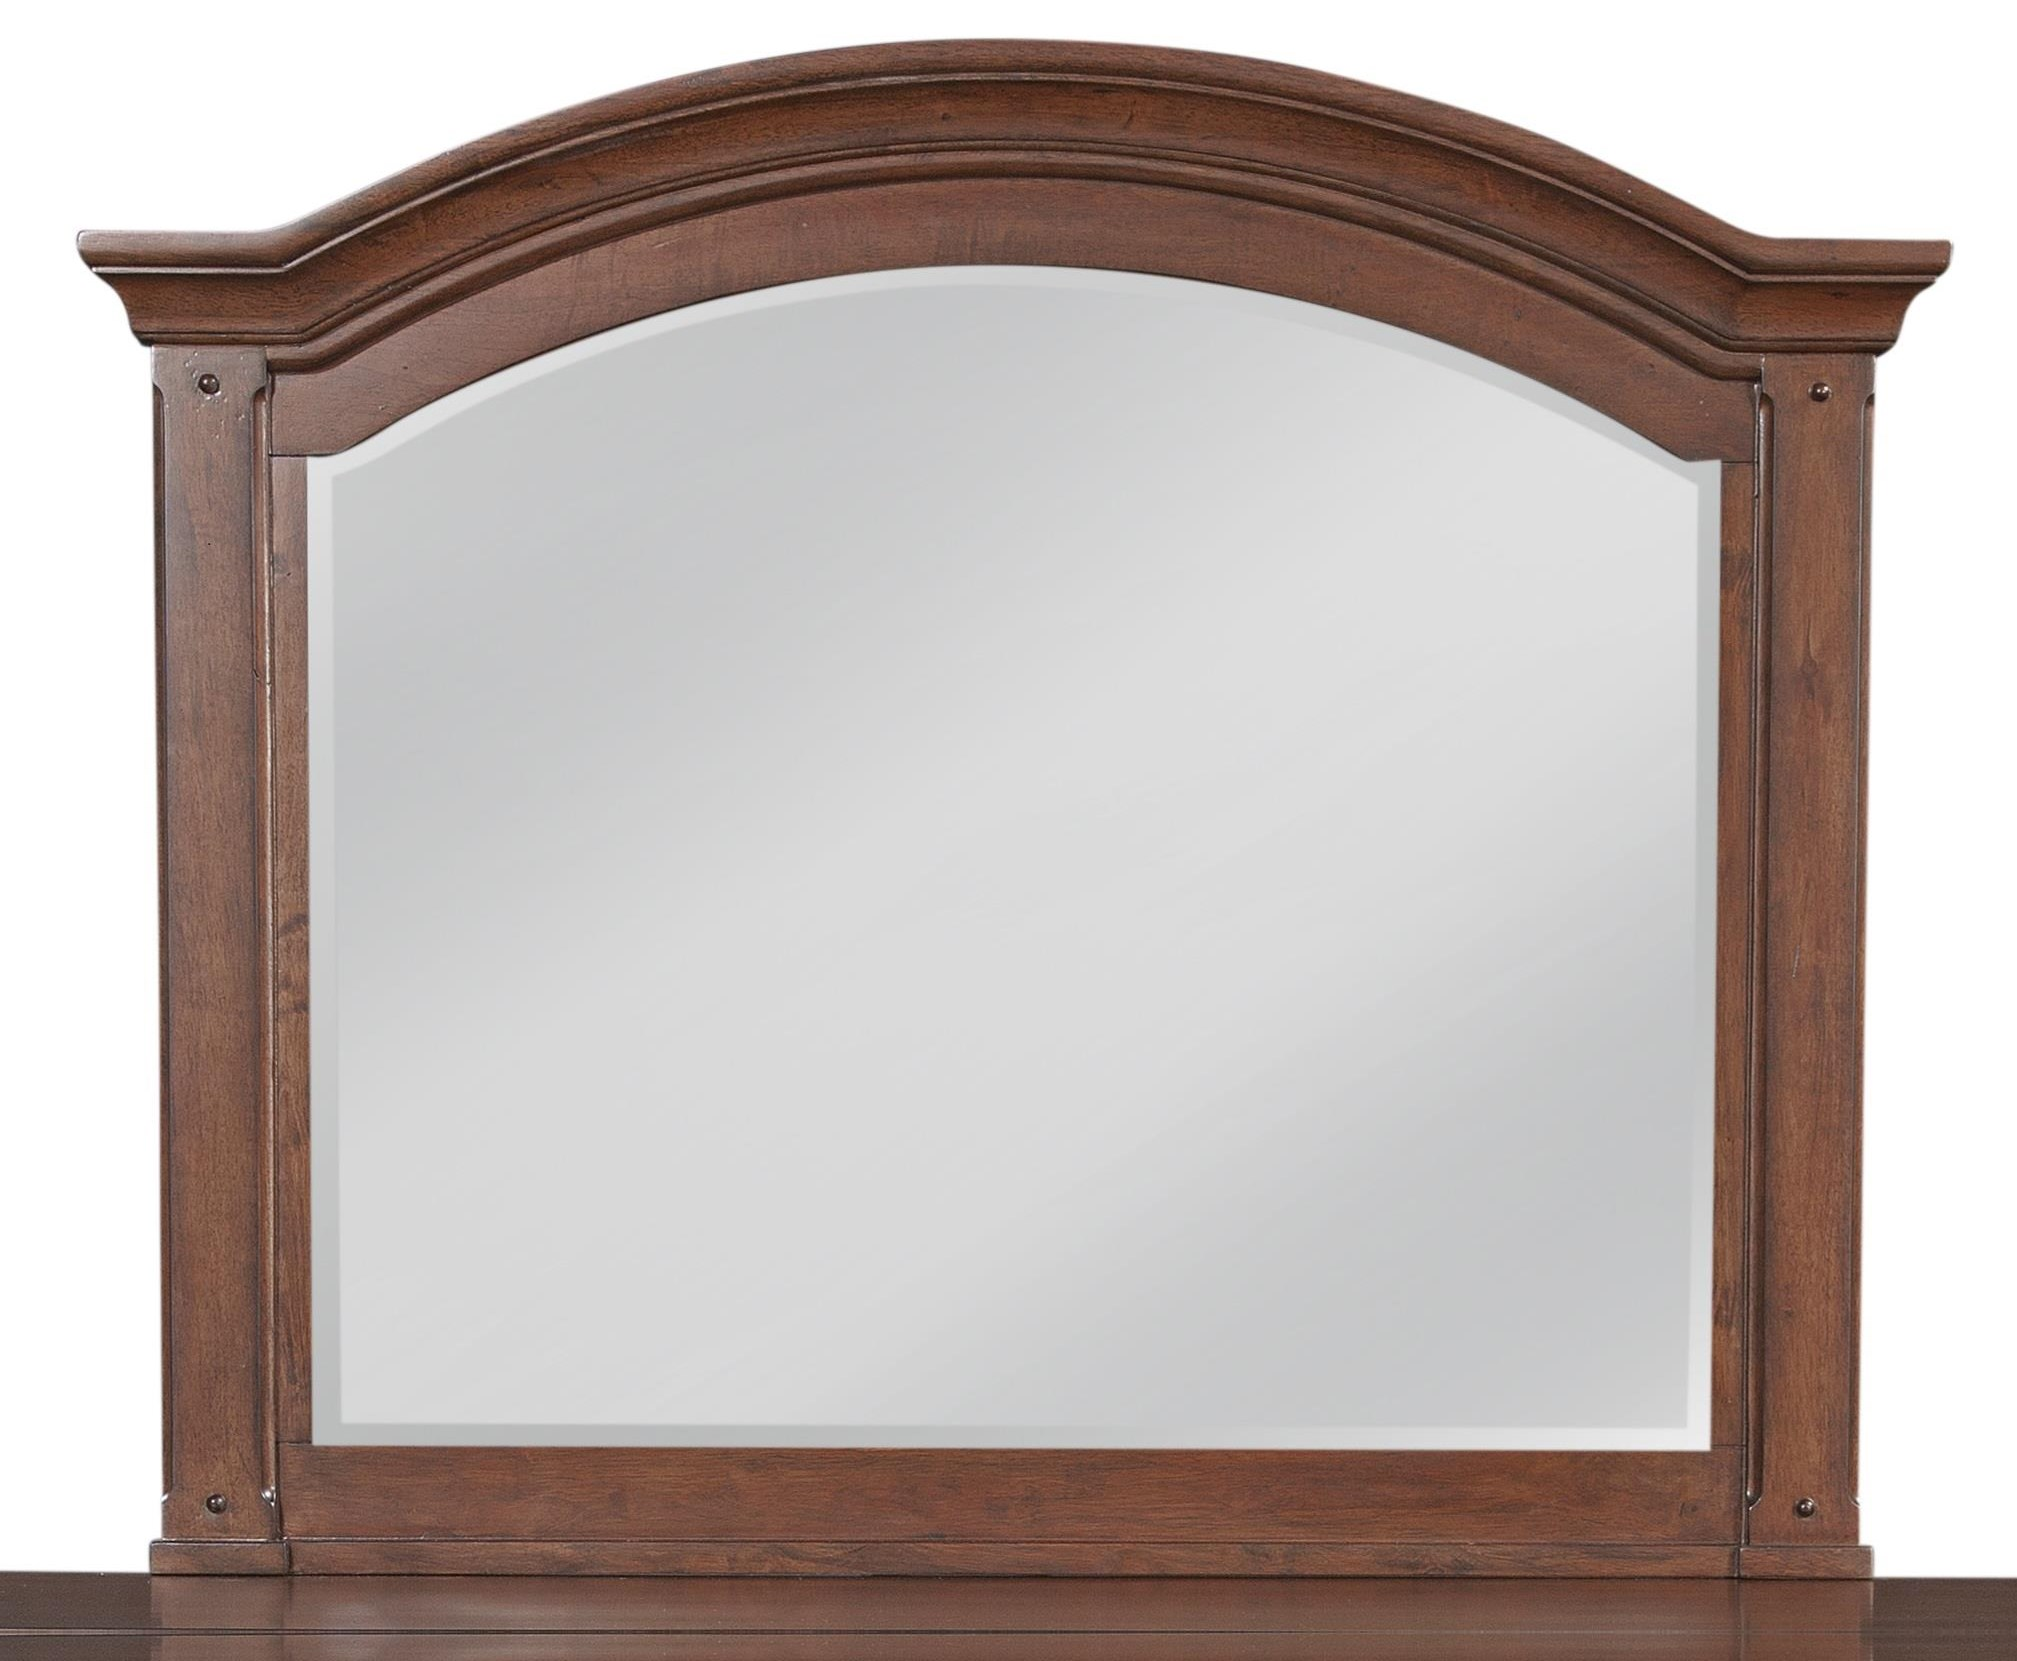 Sedona Cherry Landscape Mirror by American Woodcrafters at Johnny Janosik